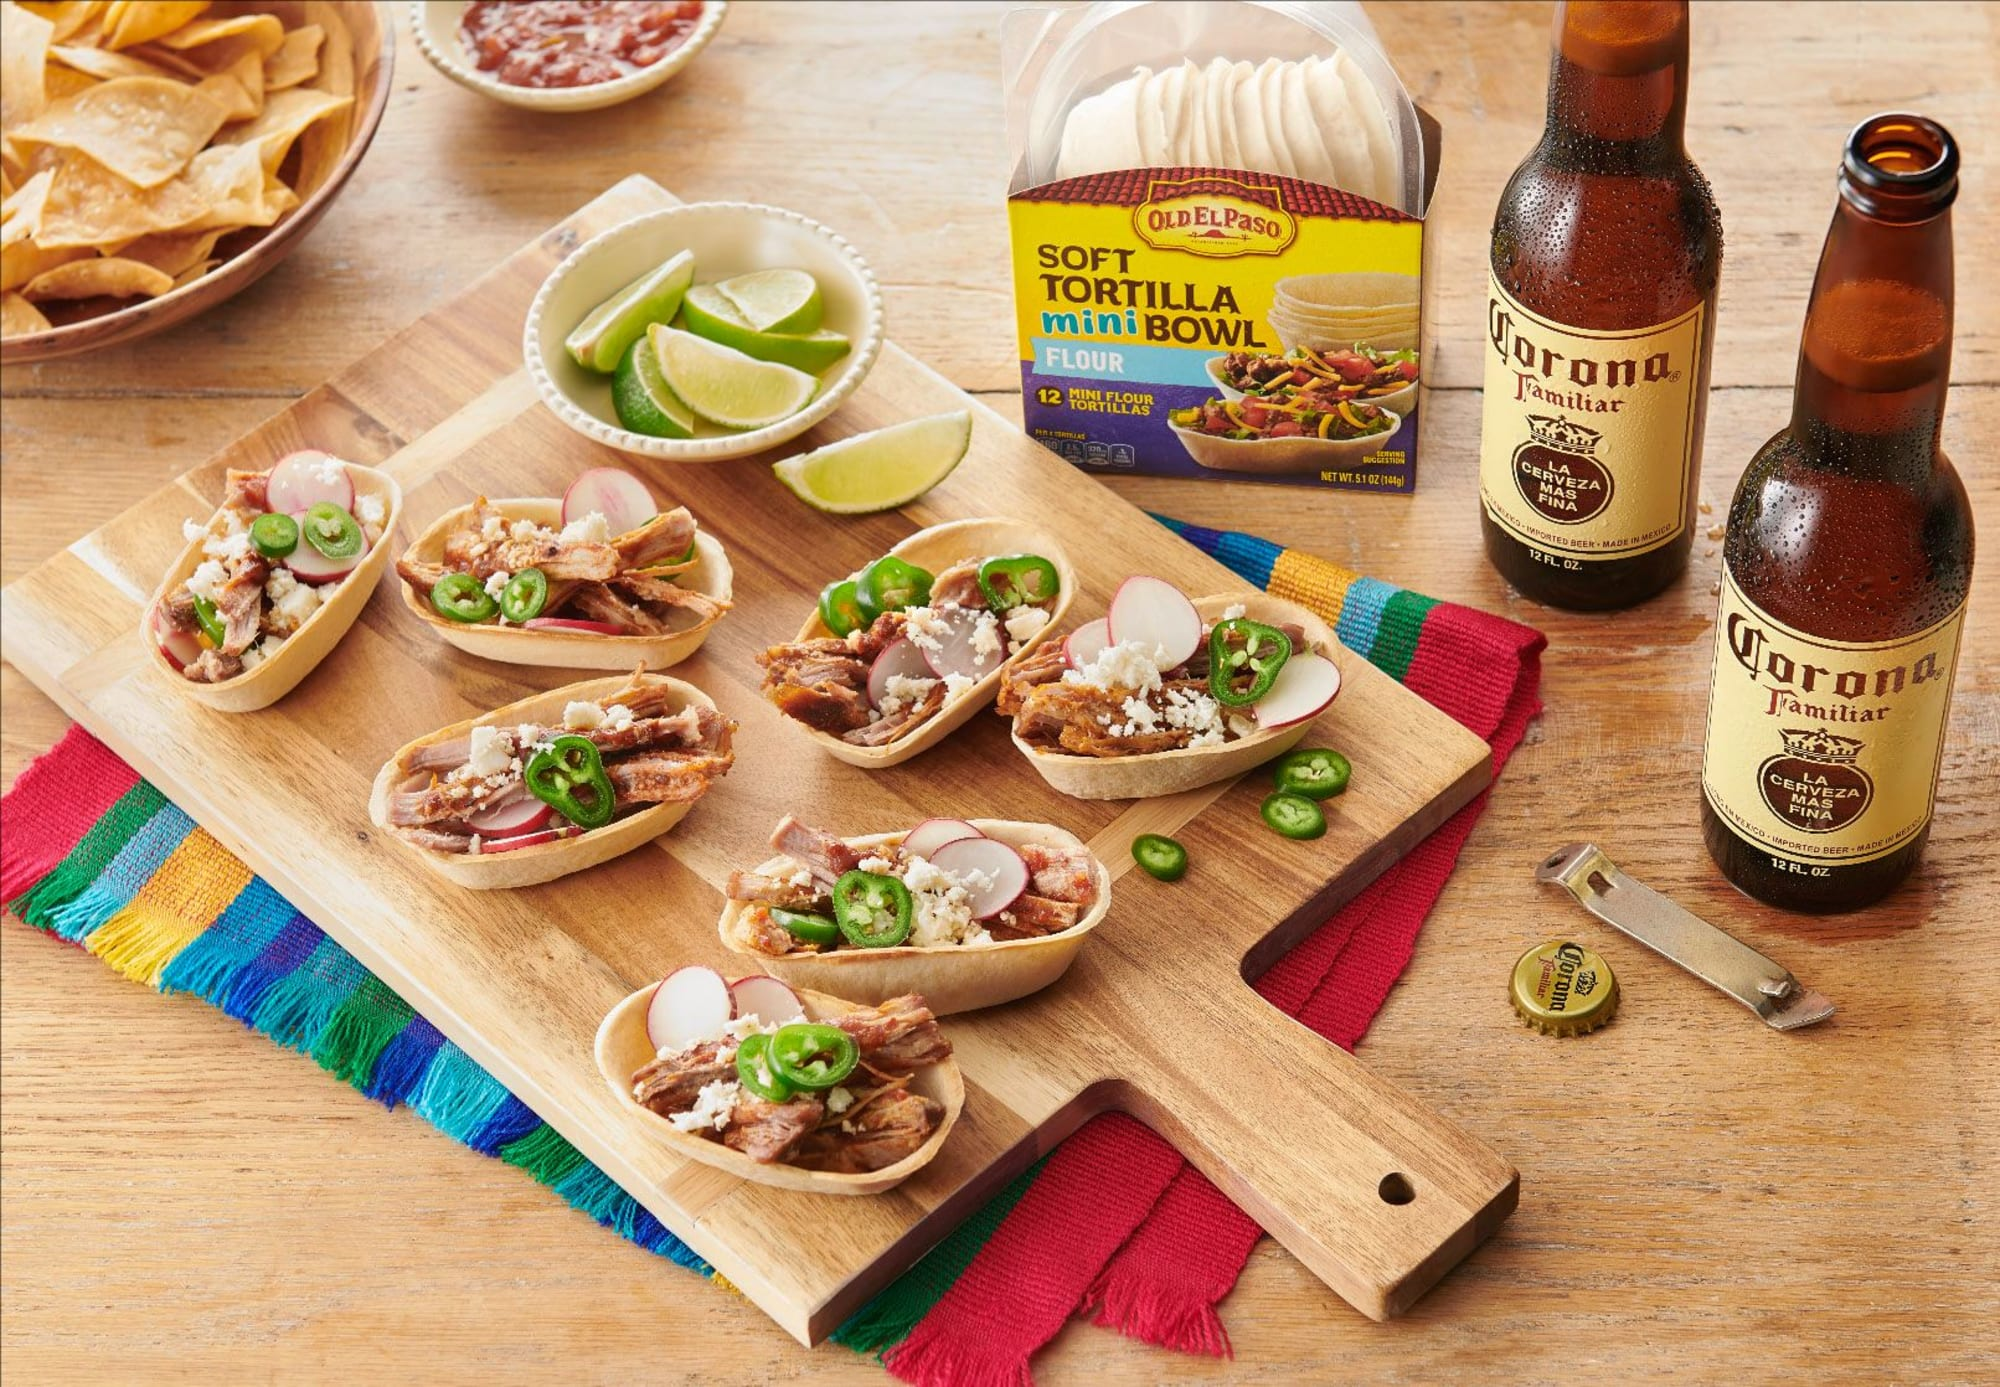 Cooking with Corona: Easy Mexican recipes that bring big flavor